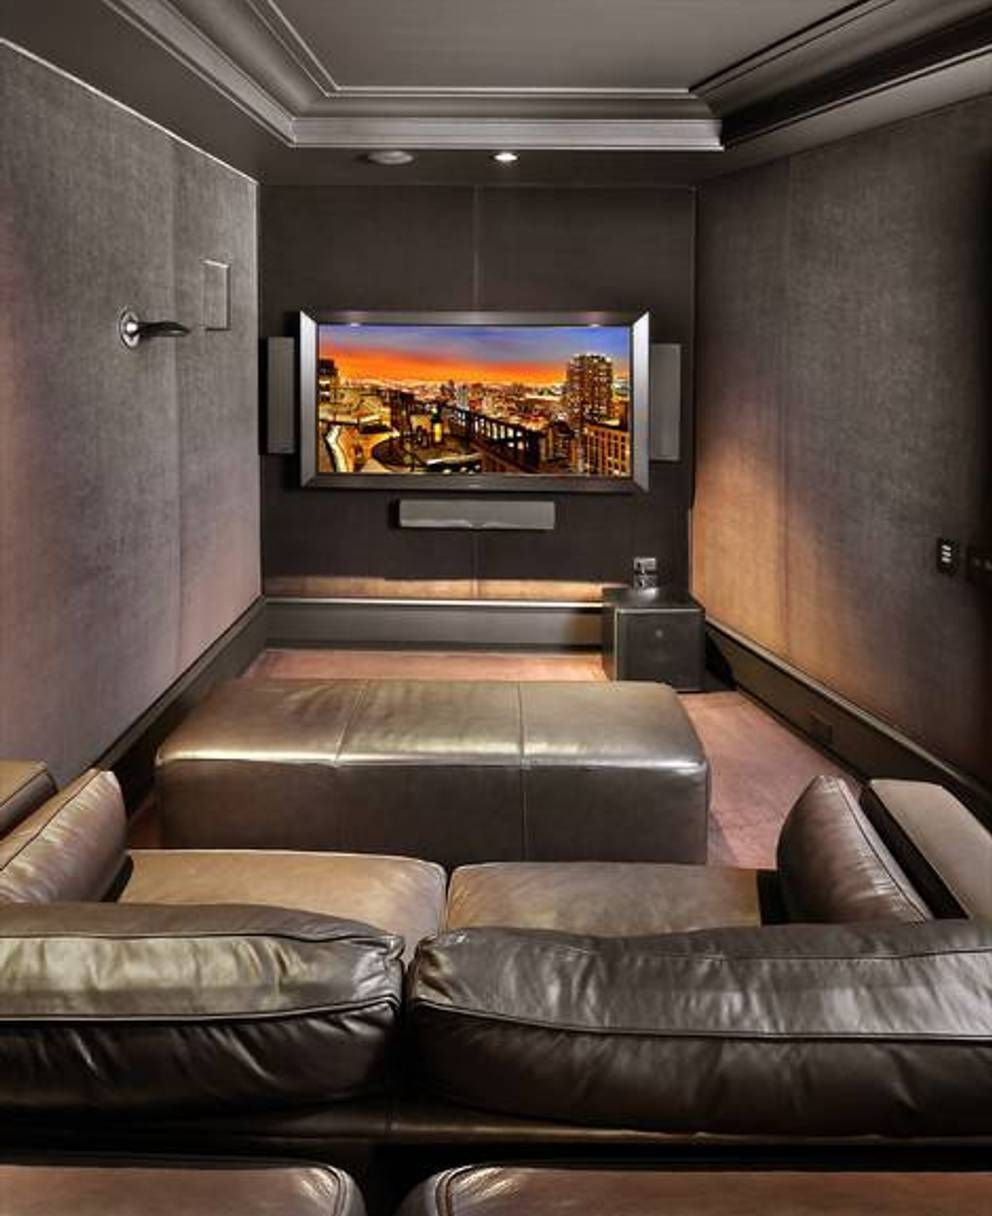 Home Design And Decor Small Home Theater Room Ideas Modern Small Home Theater Room With Leather L Small Home Theaters Home Theater Rooms Home Theater Setup